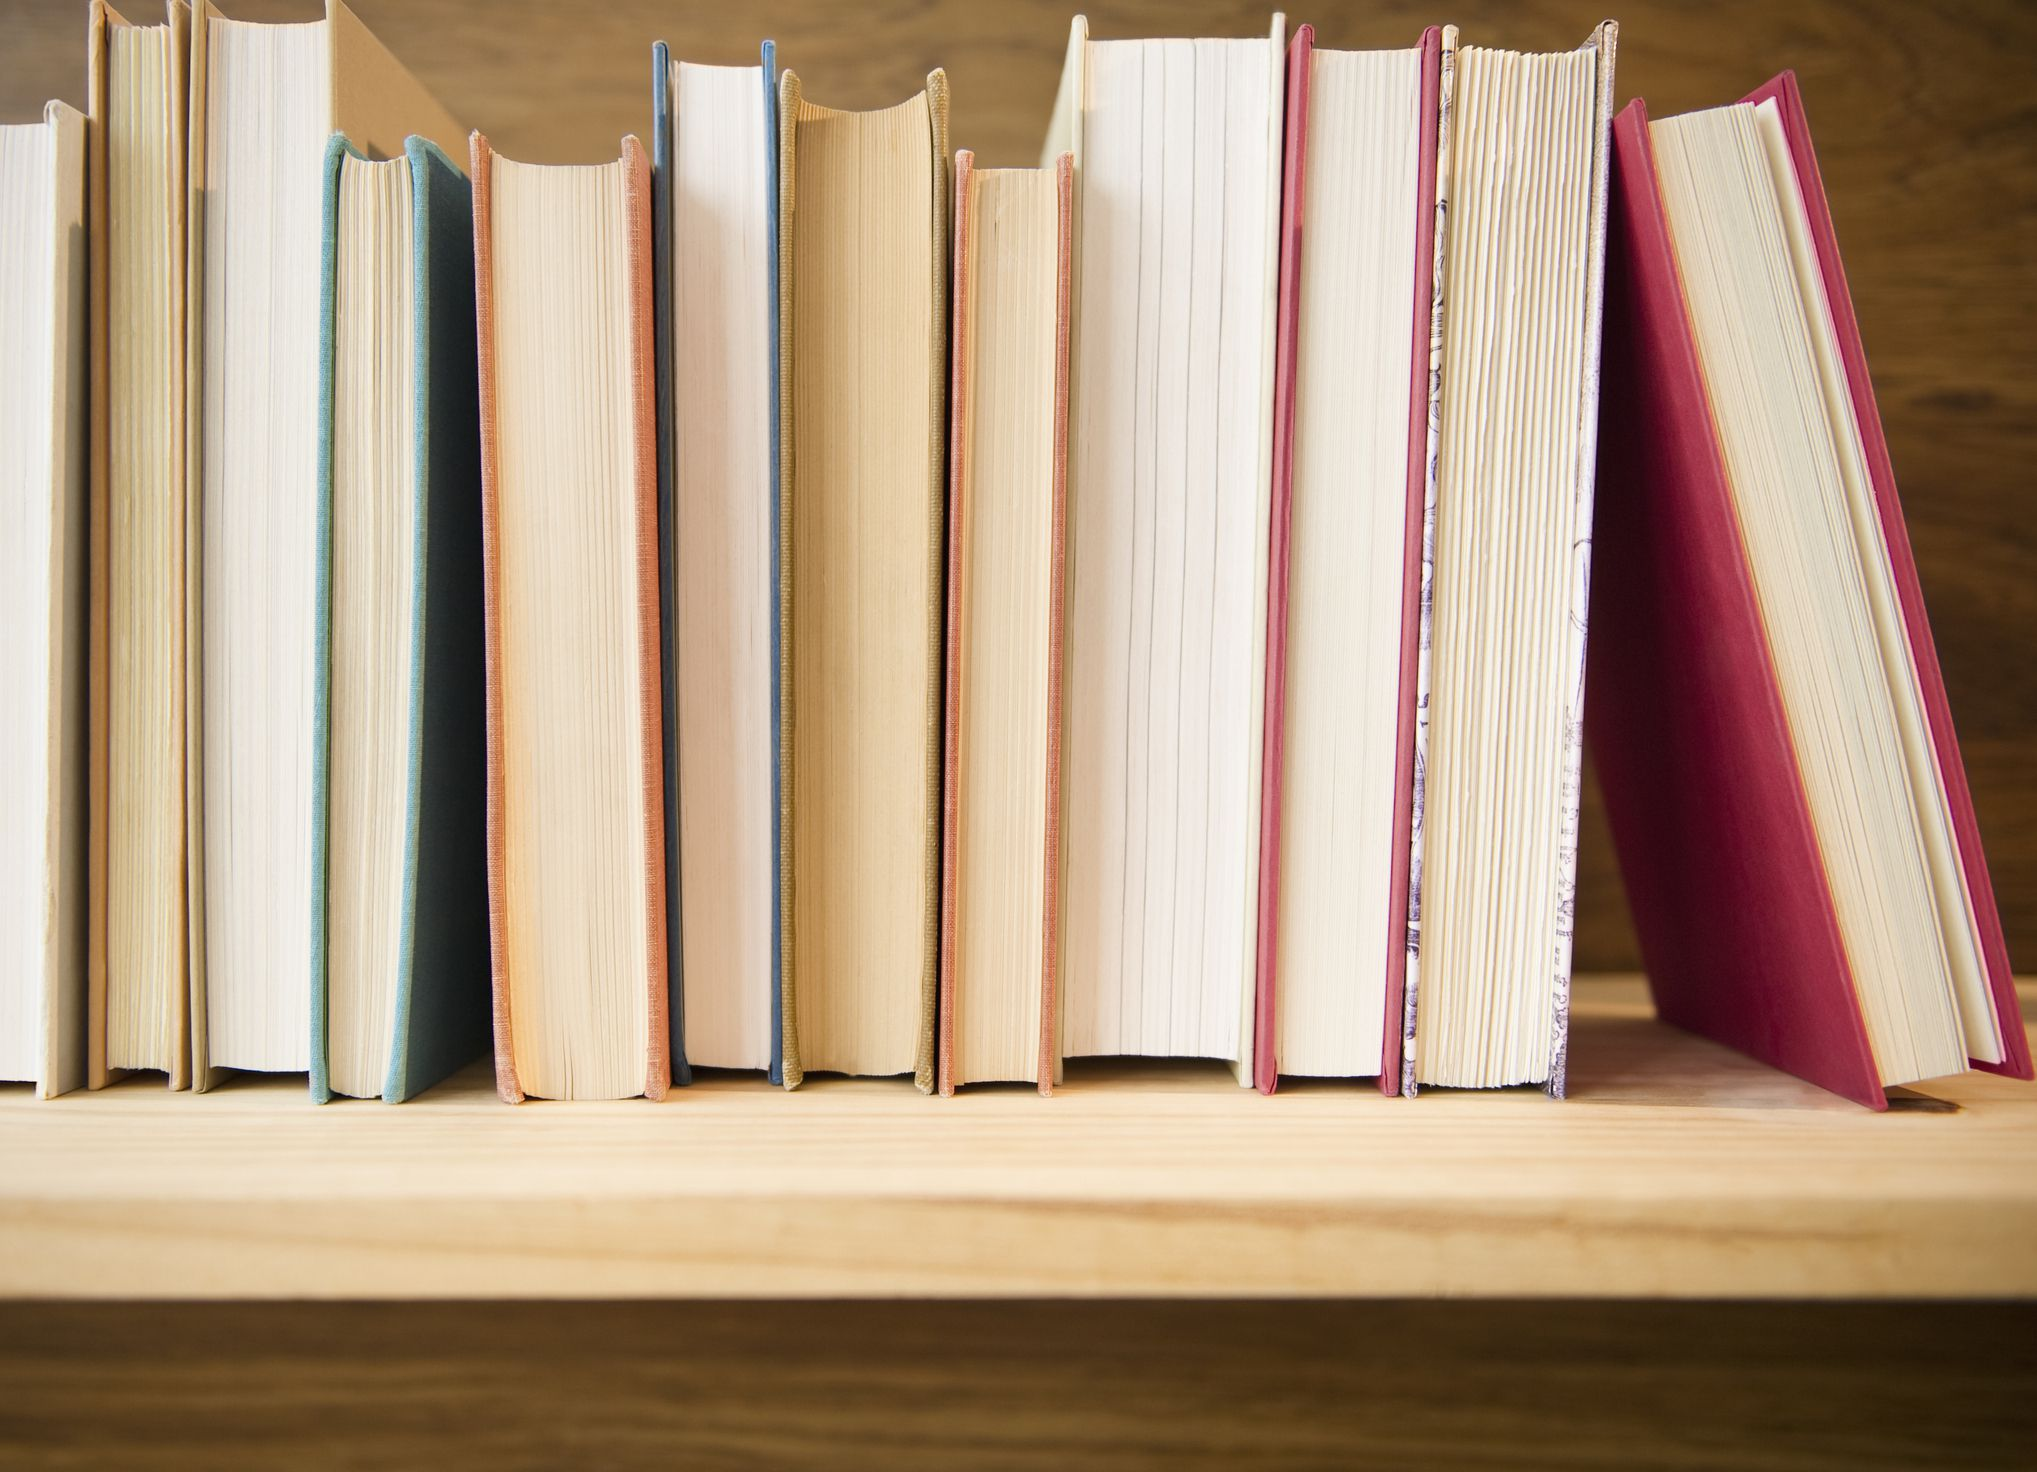 The 9 Best Career Books of 2019